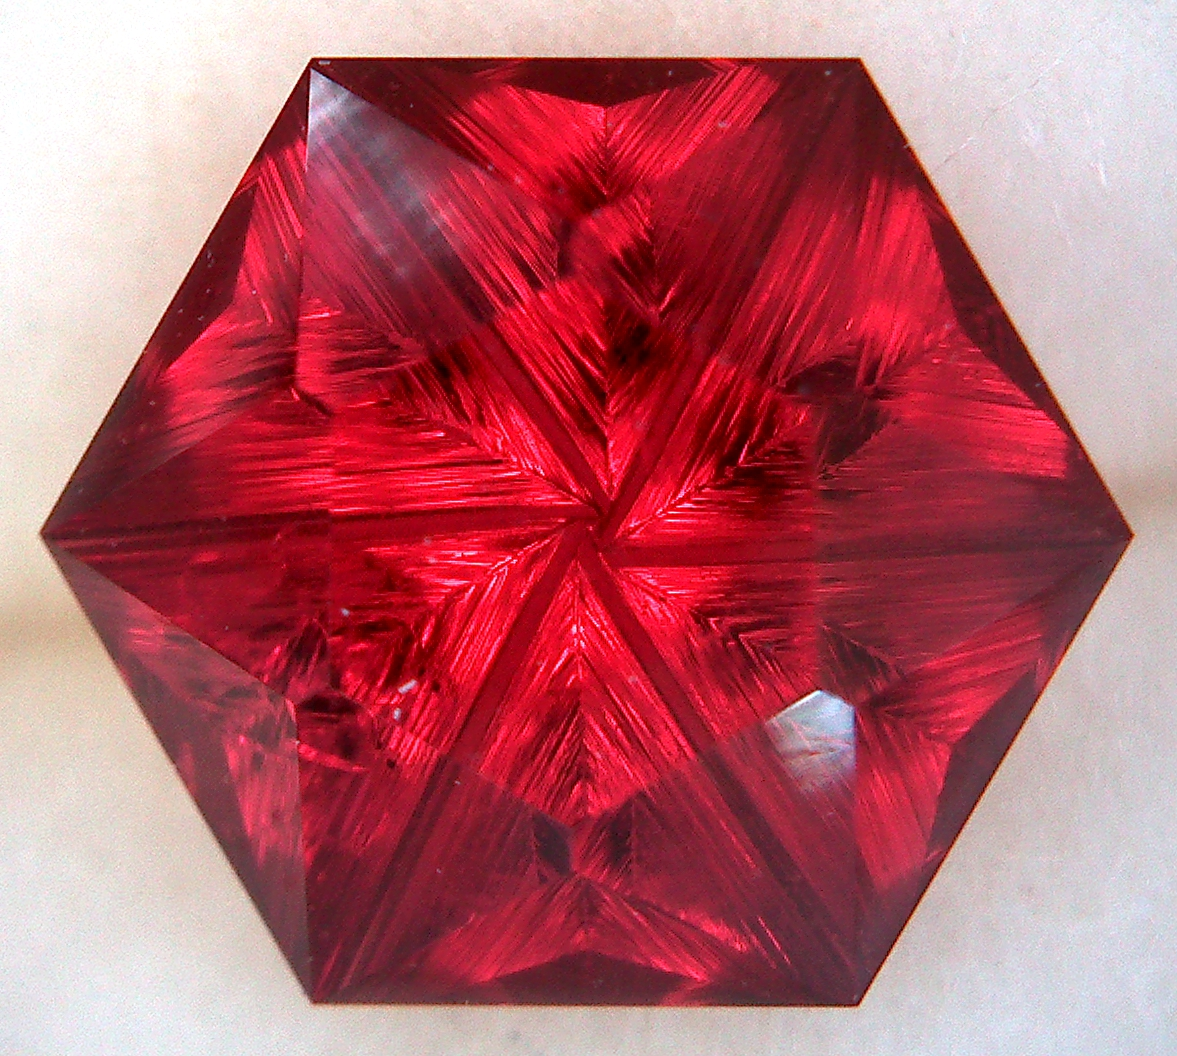 Fantasy Cut Garnet The Gemstone Artistthe Gemstone Artist